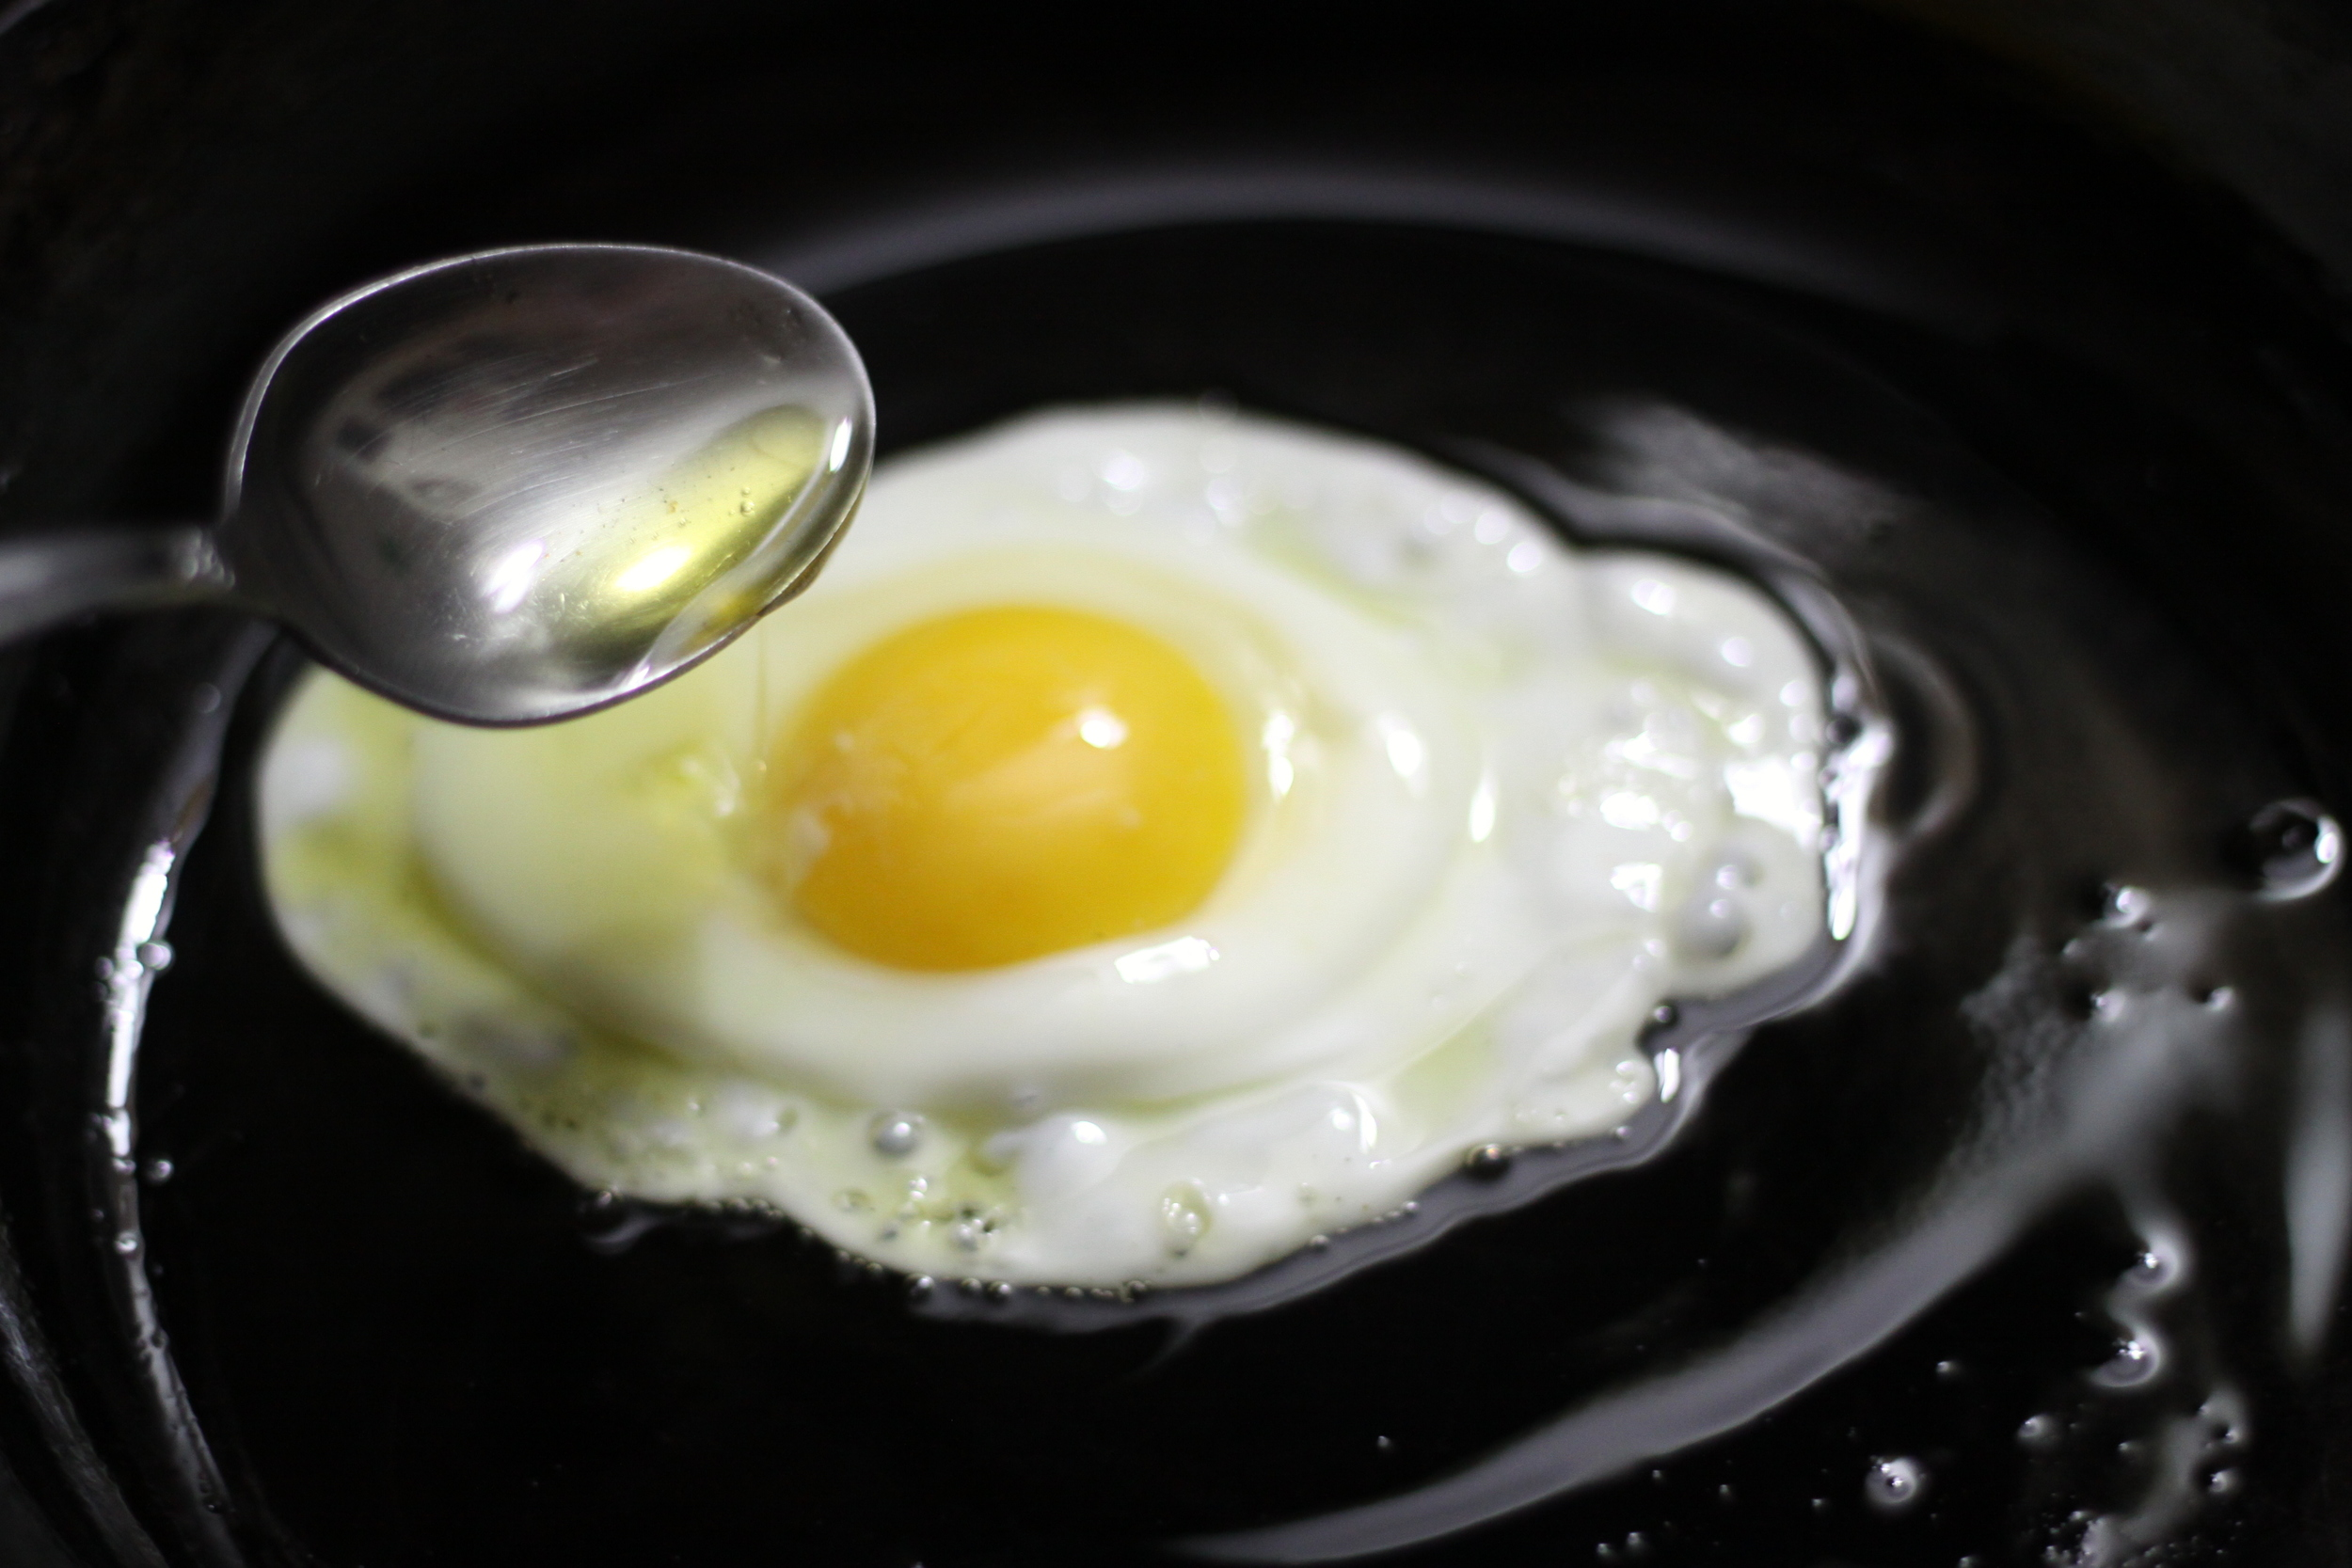 frying an egg in oil